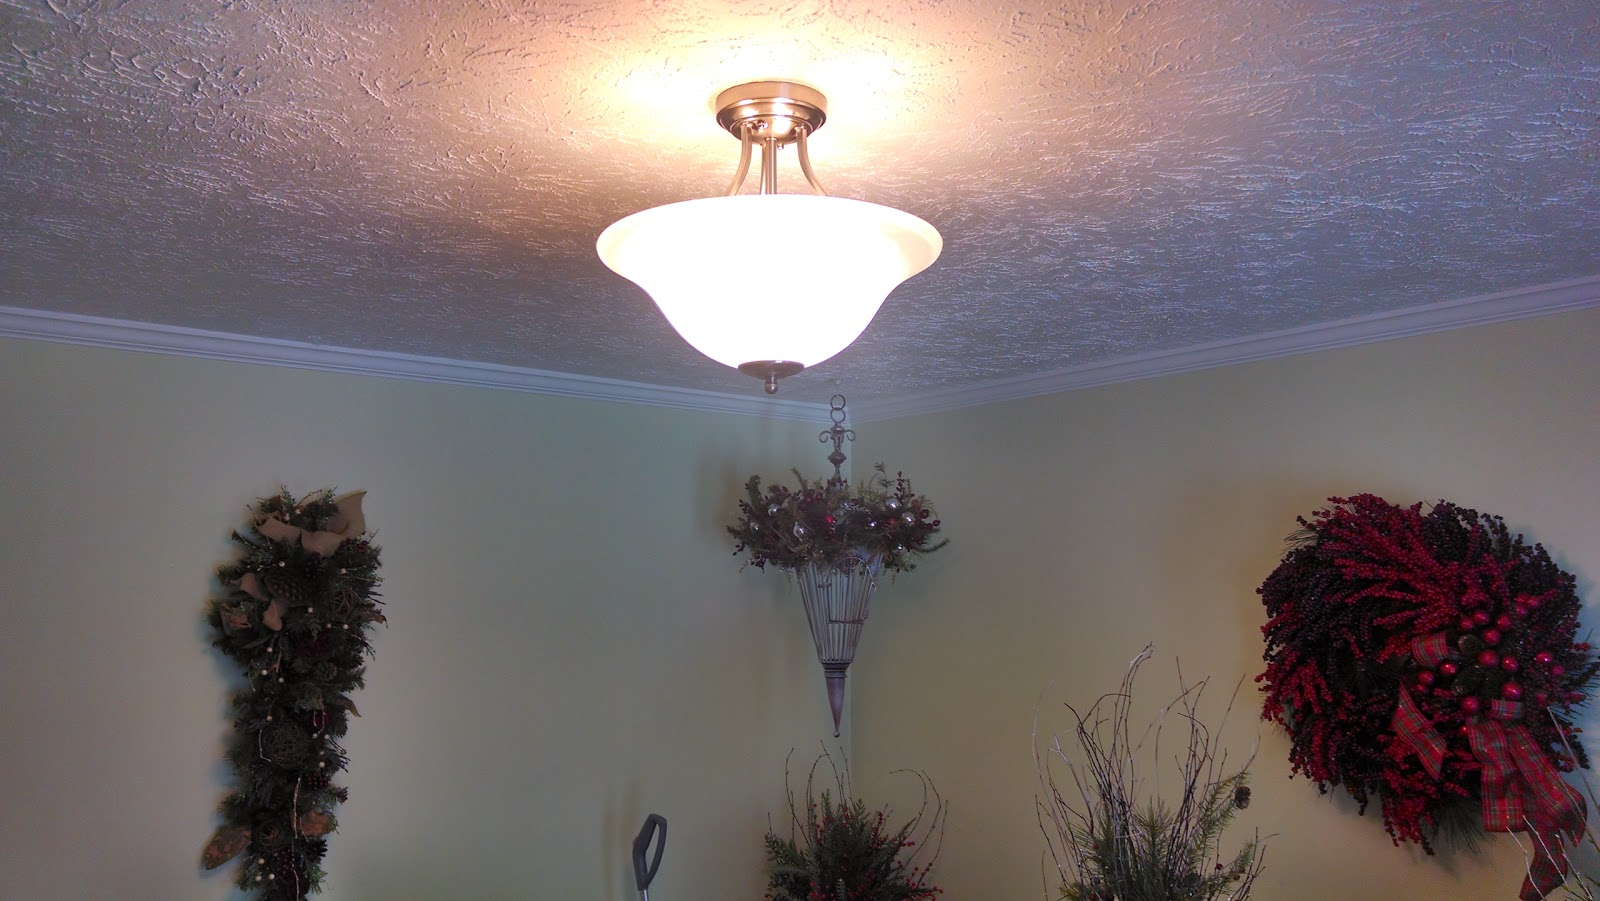 Mark\'s Project Blog: Replacing a ceiling fan with a light fixture